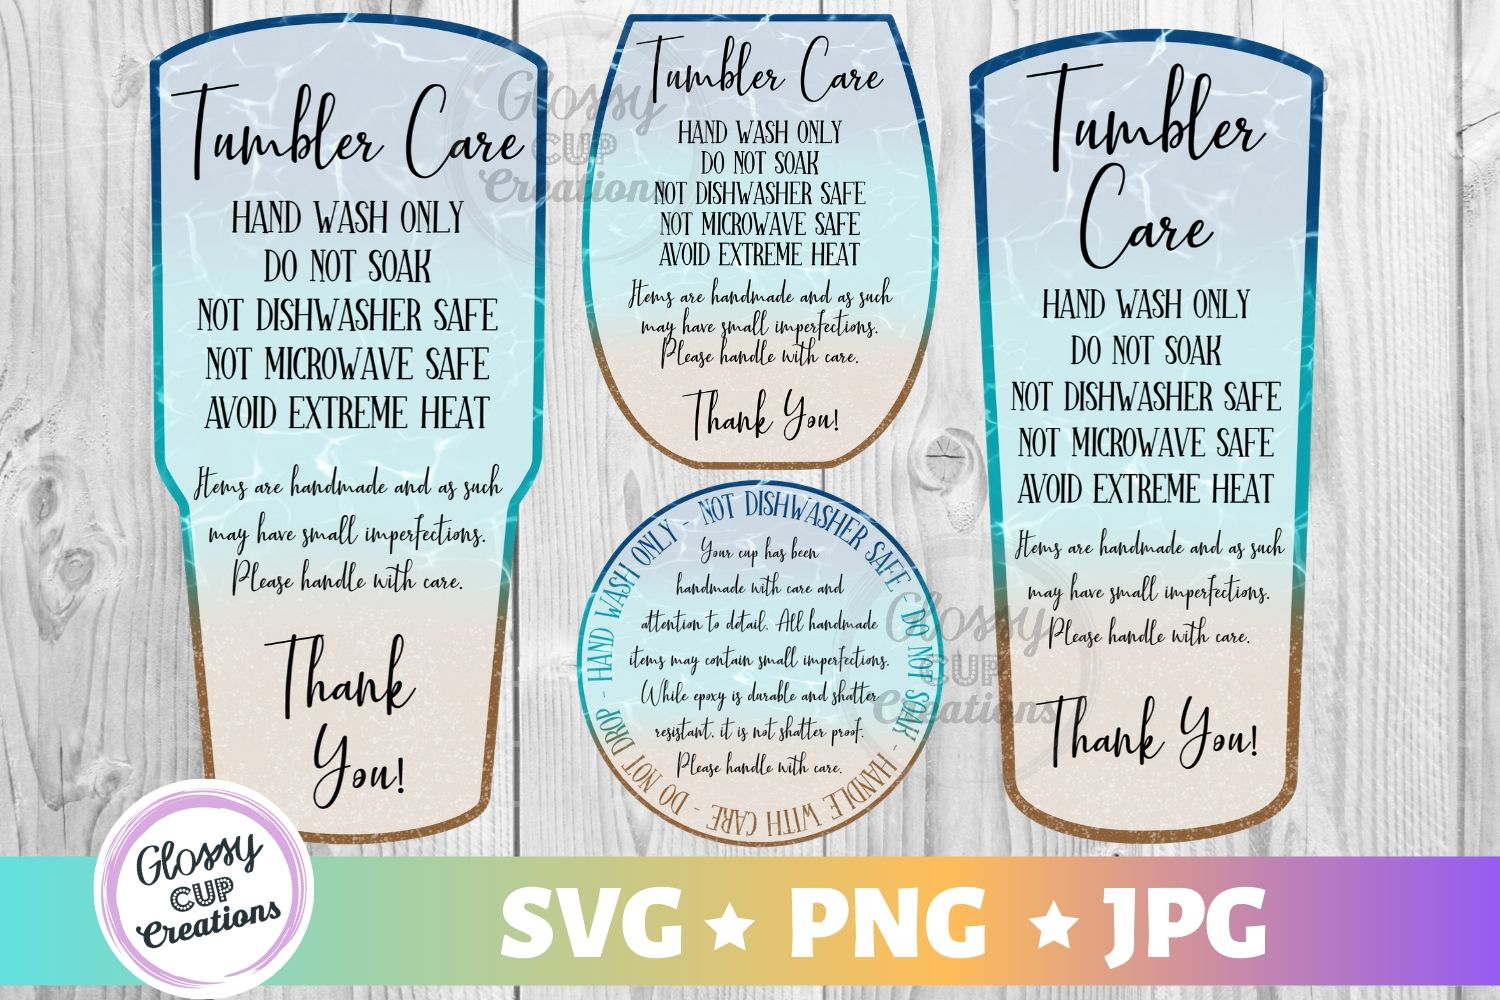 Download Free Tumbler Care Cards Beach Design 4 Pack Graphic By Suzannecornejo for Cricut Explore, Silhouette and other cutting machines.